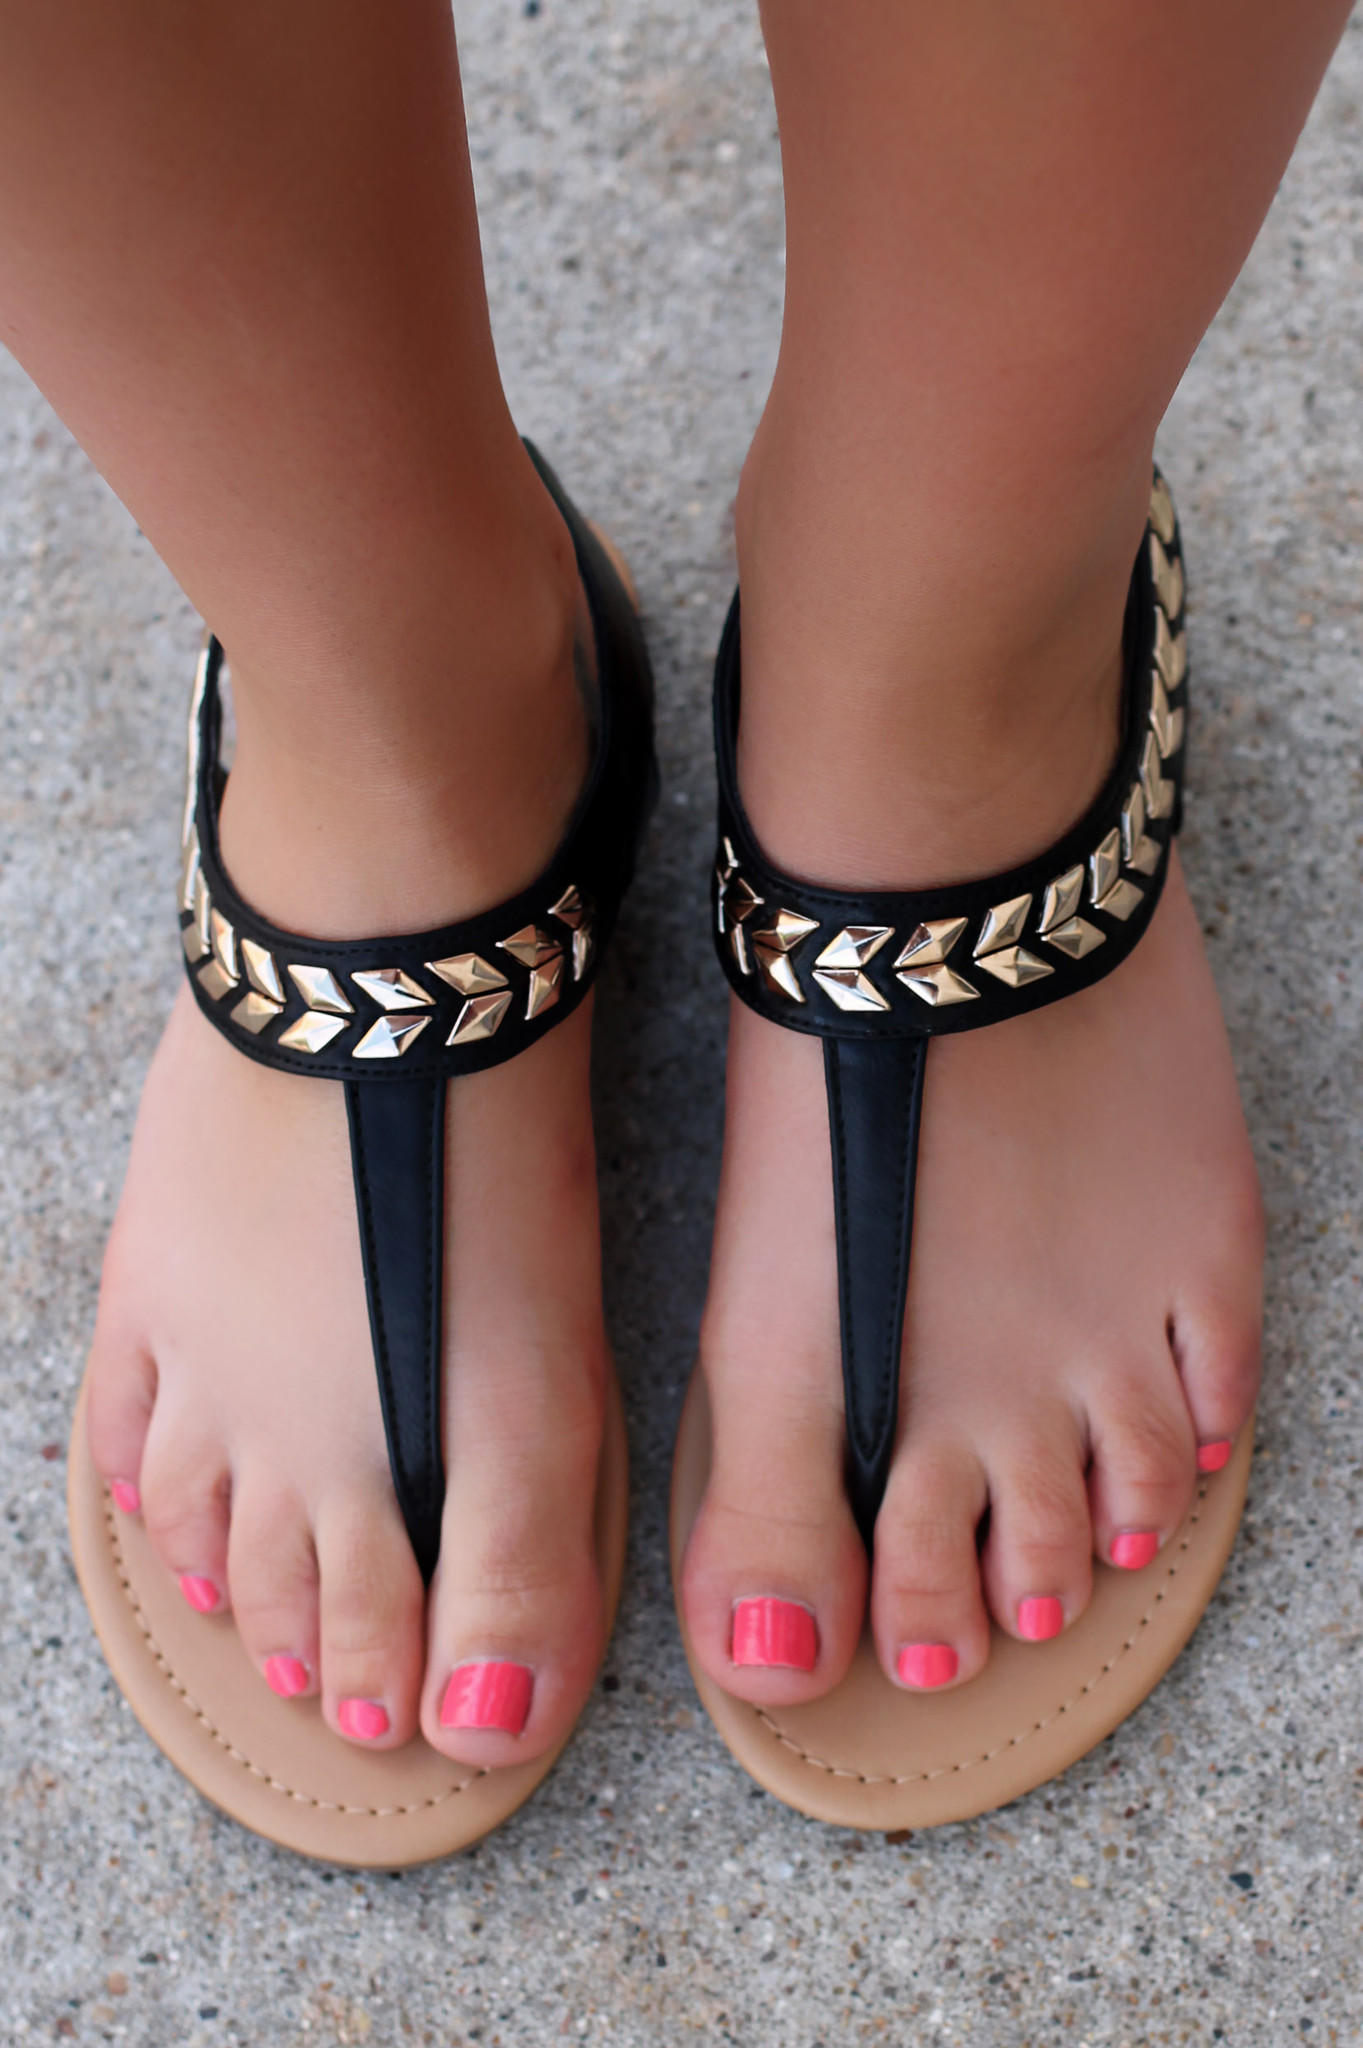 Yet To Come Sandal Black From Uoi Boutique Bahamas 2k15